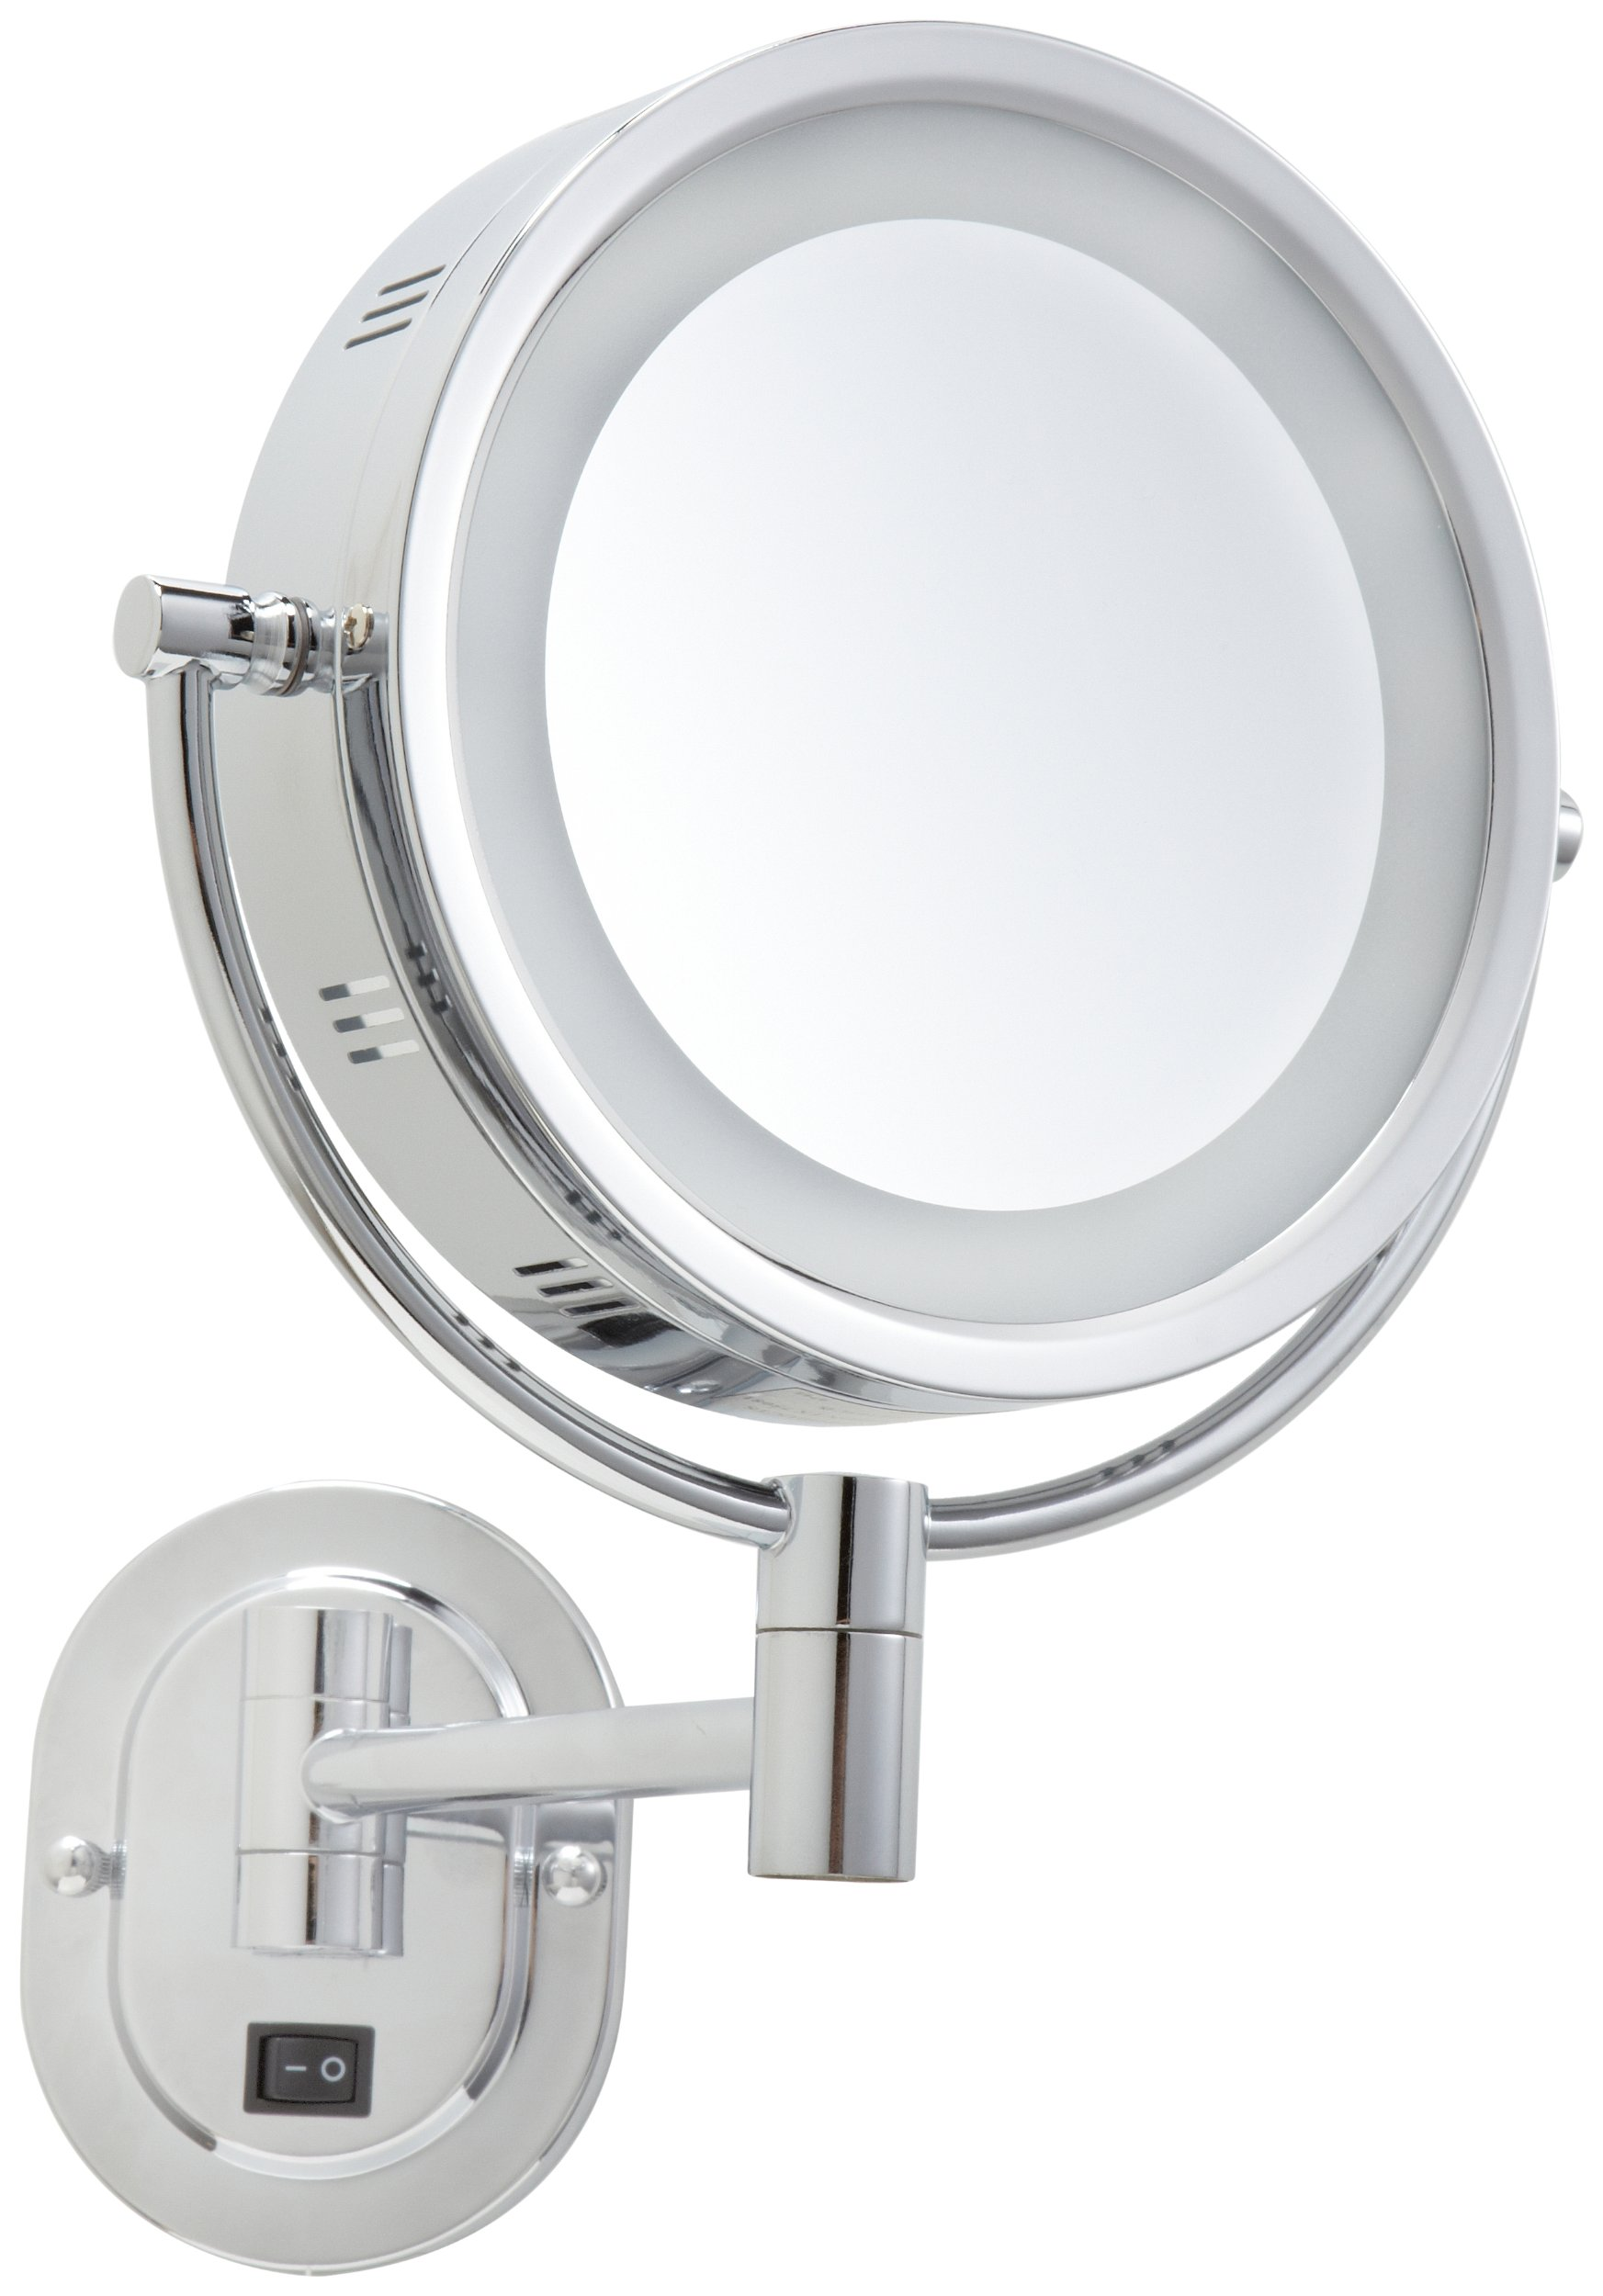 Jerdon HL165CD 8-Inch Lighted Wall Mount Direct Wire Makeup Mirror with 5x Magnification, Chrome Finish by Jerdon (Image #2)